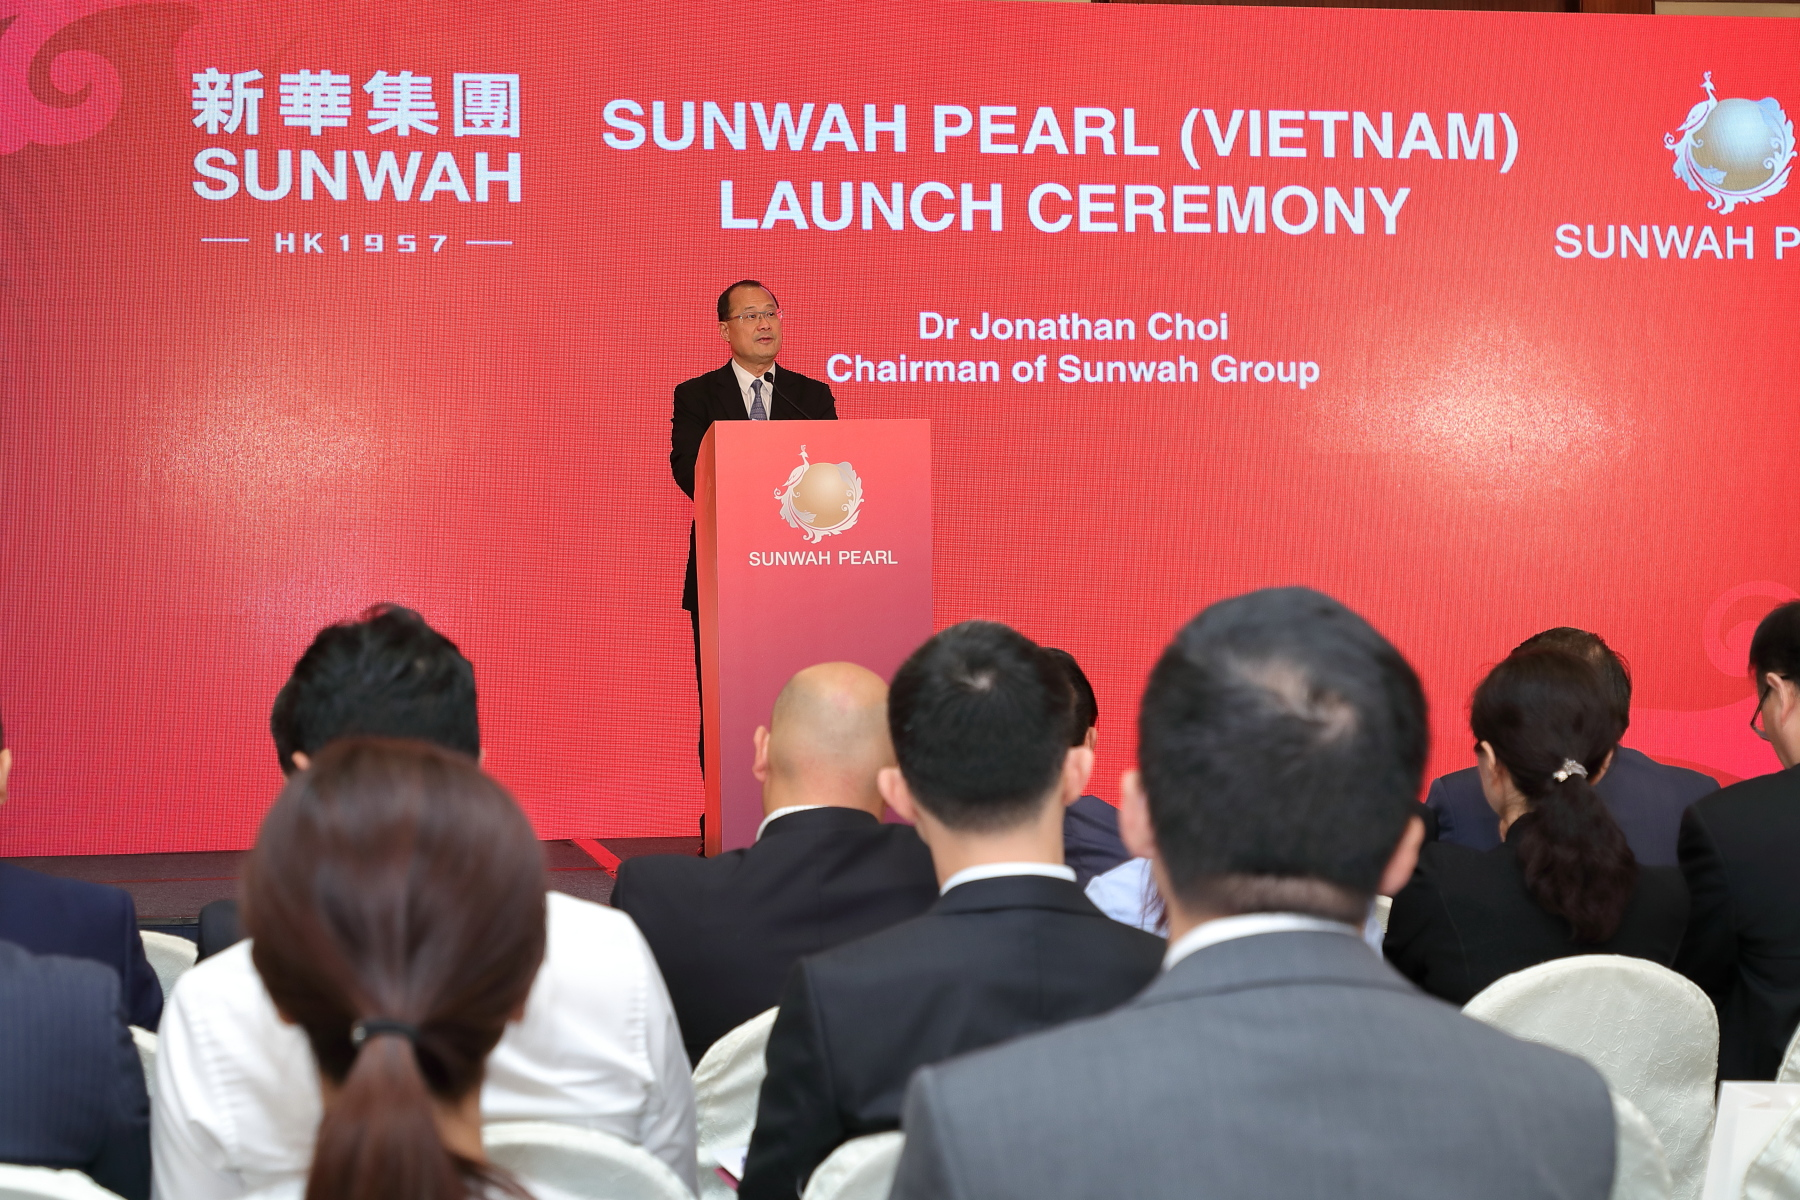 Dr Jonathan Choi delivered Opening Speech at Sunwah Pearl Project Launch Ceremony in Hong Kong